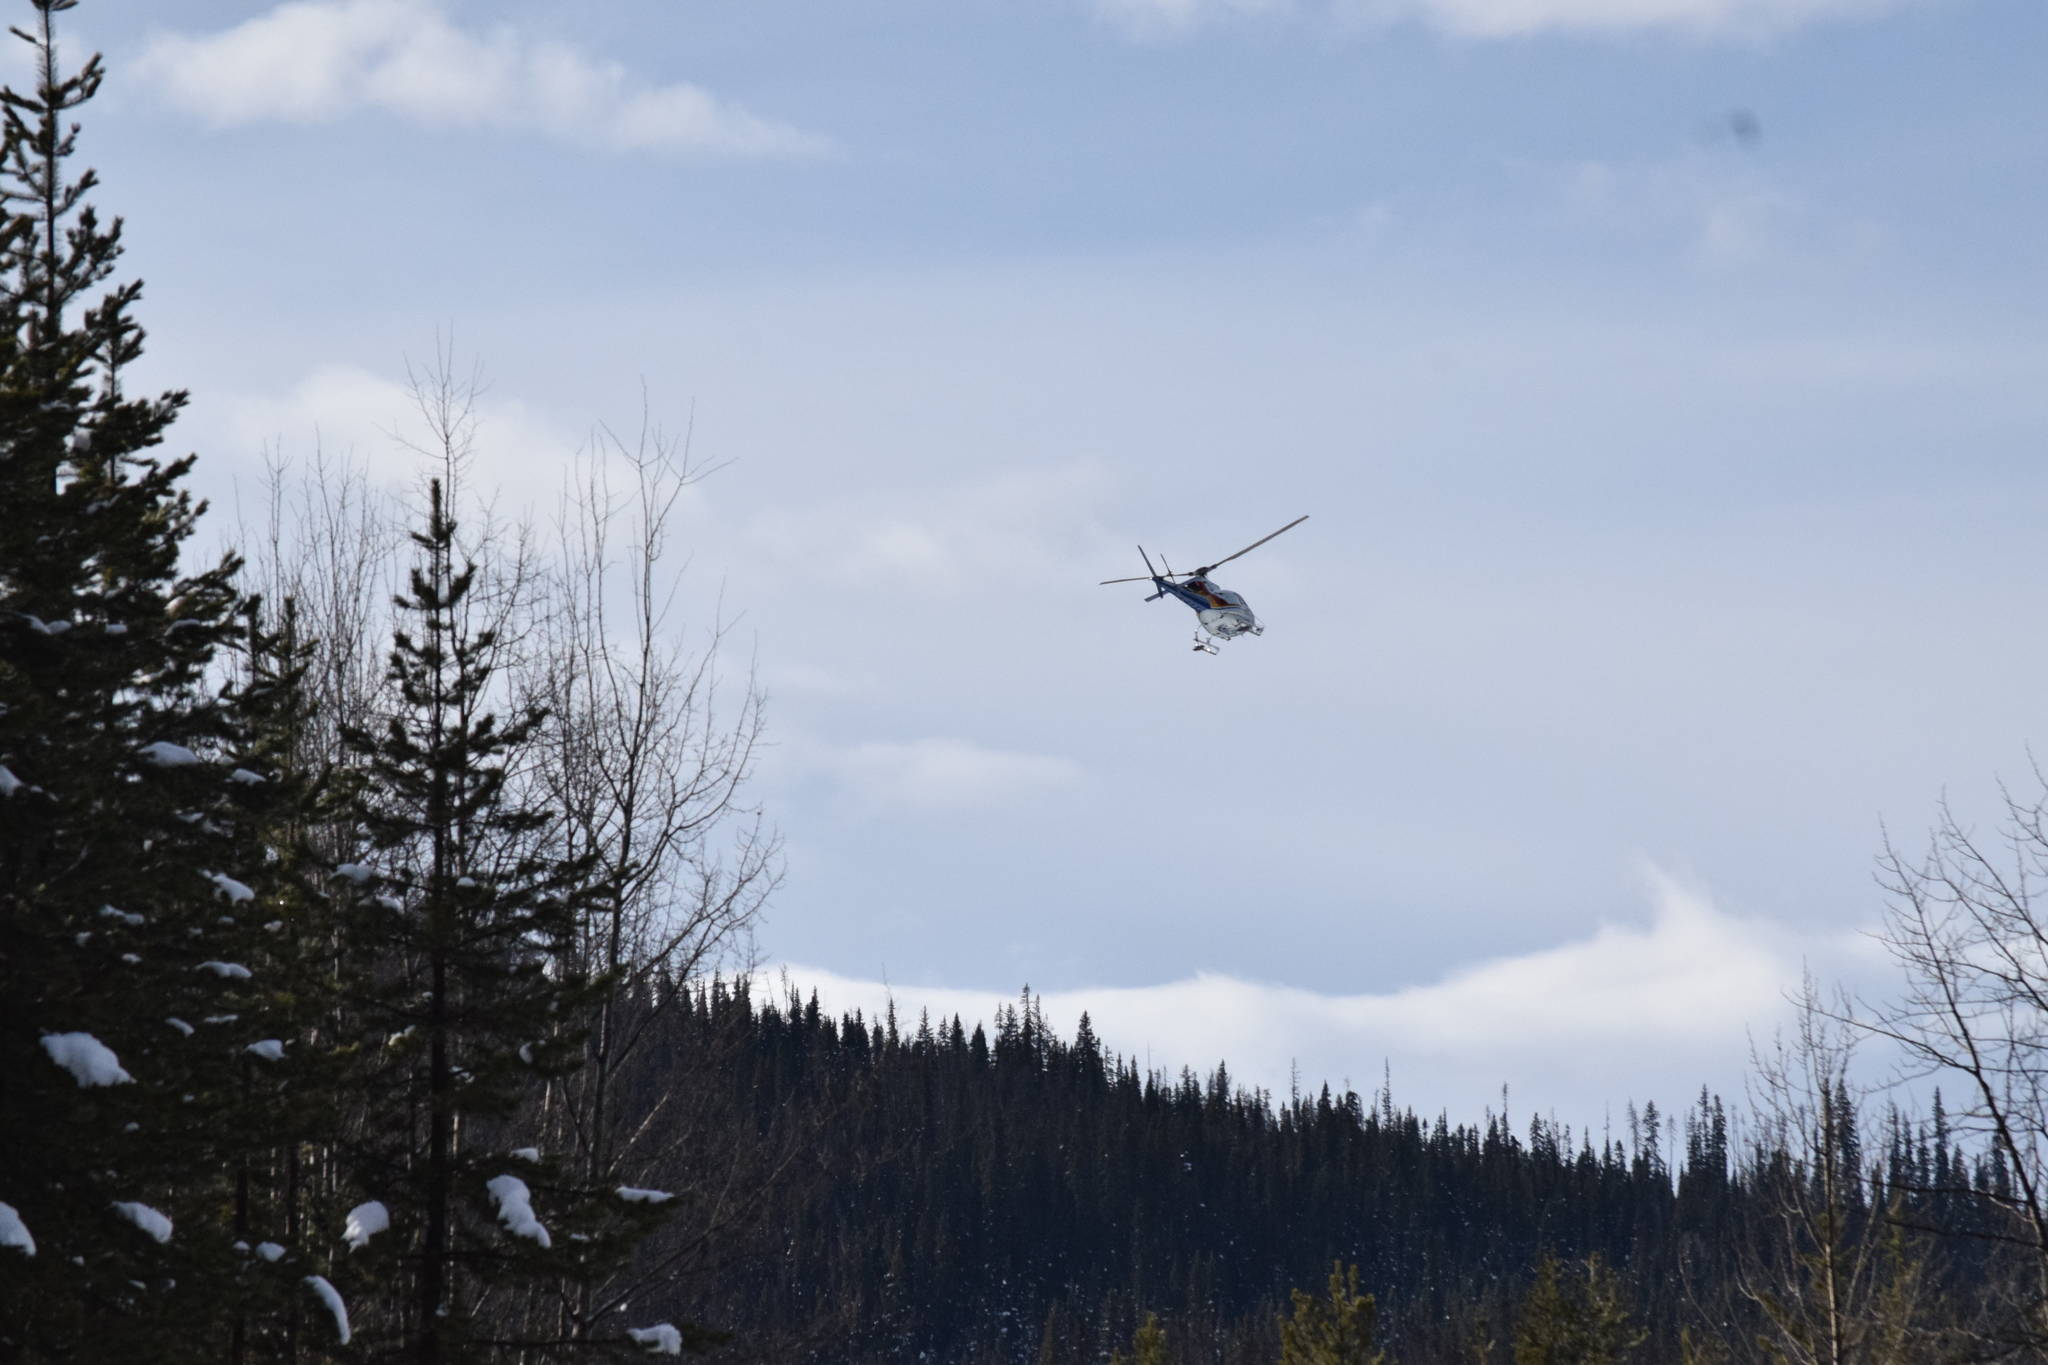 An RCMP helicopter pictured during the afternoon of Feb. 5 flying above the Morice West Forest Service Road. (Trevor Hewitt photo)